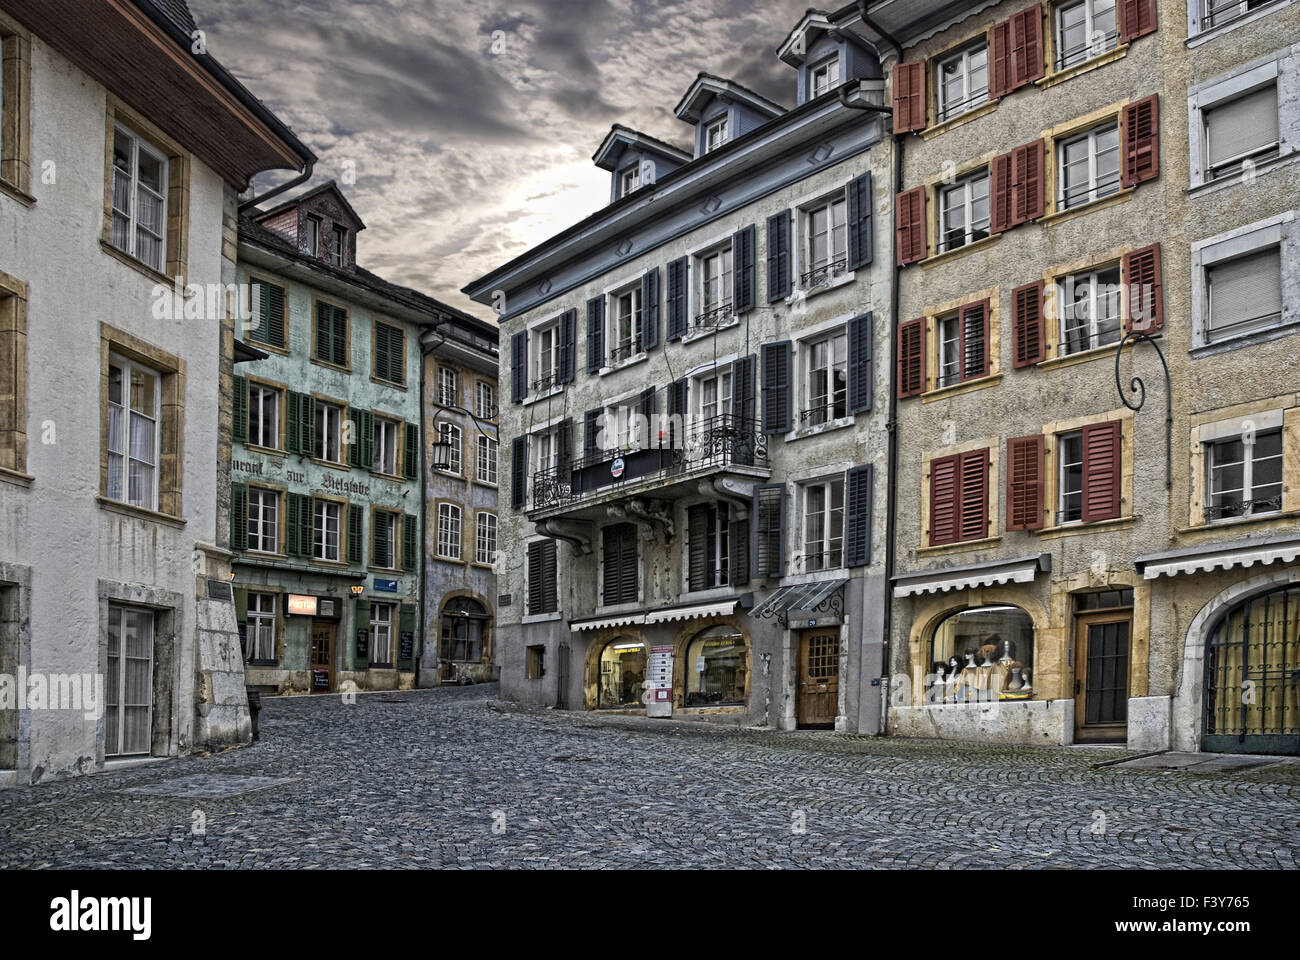 Bienne in switzerland - Stock Image